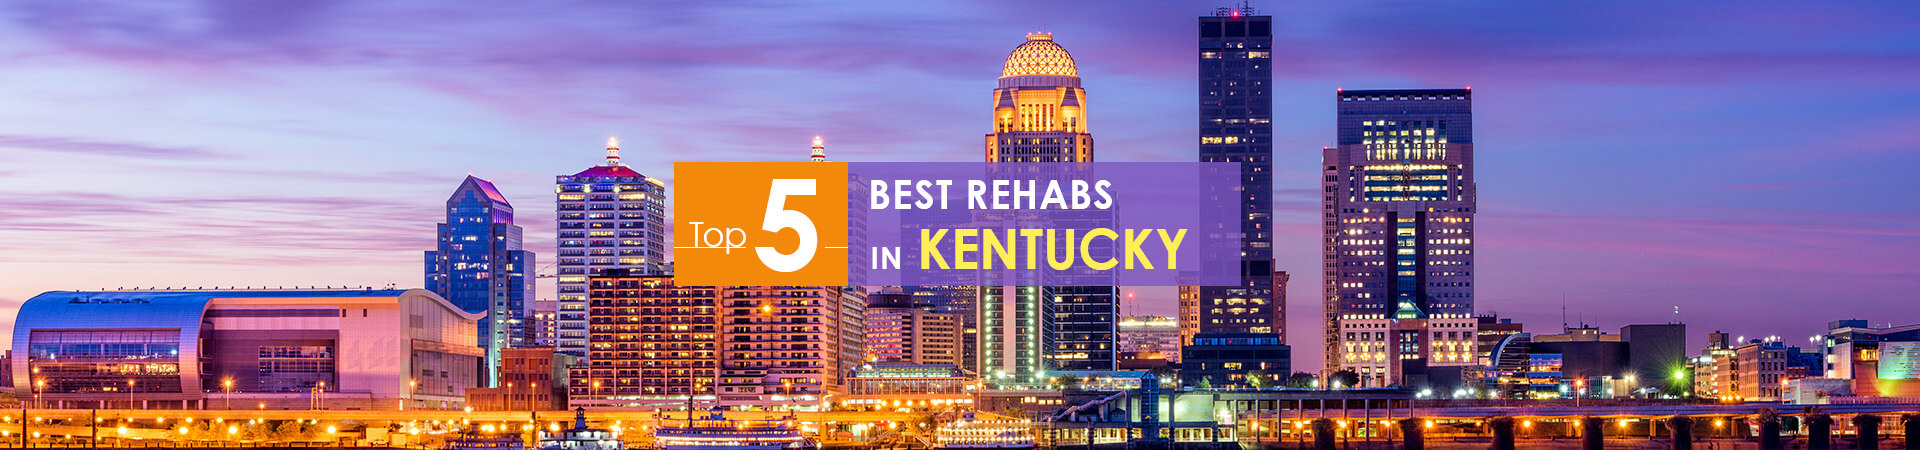 Kentucky night view and top 5 rehabs caption